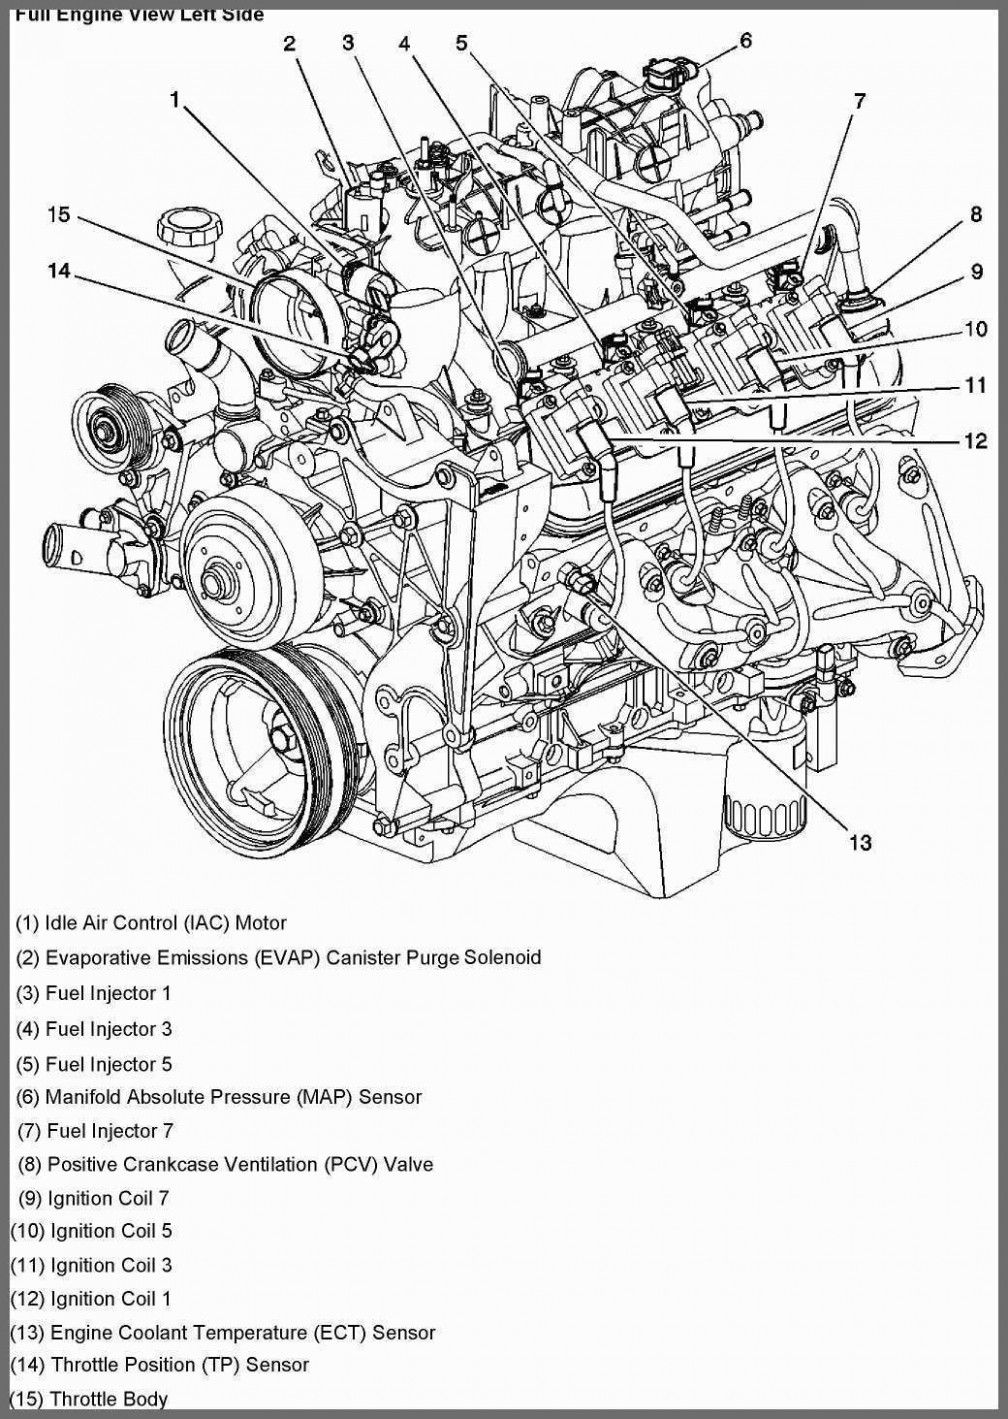 4 2 vortec engine diagram - wiring diagram data 4 3l vortec engine intake diagram 4.3 vortec intake manifold tennisabtlg-tus-erfenbach.de